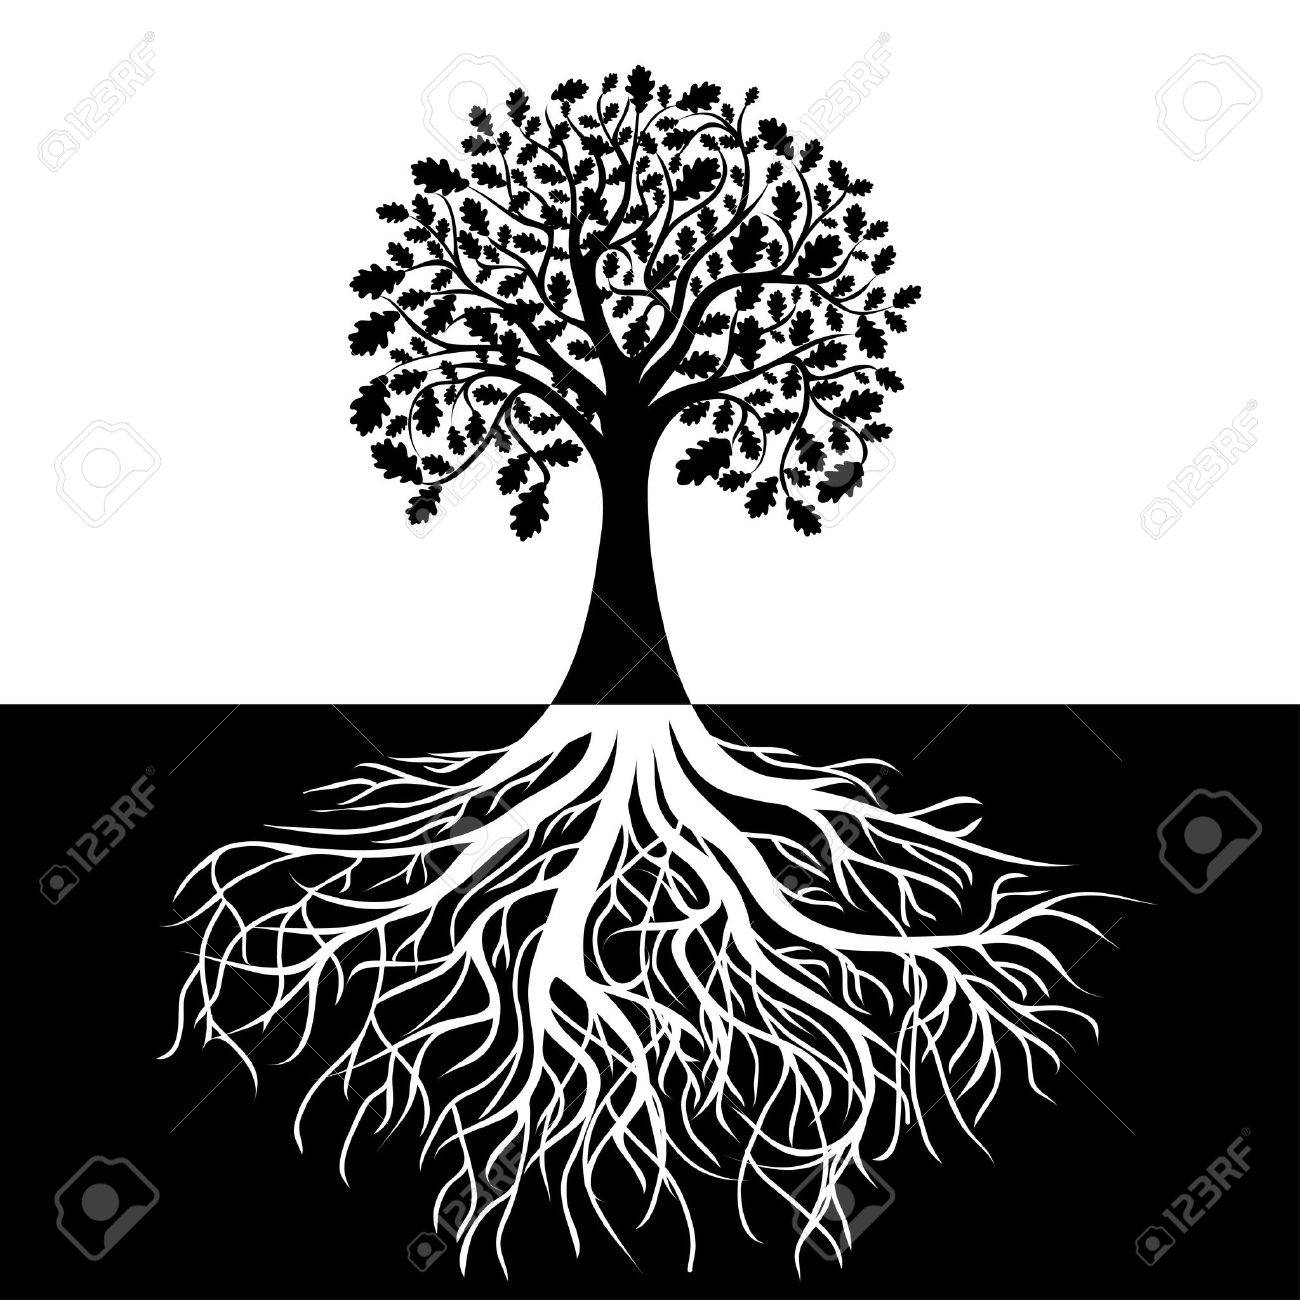 Tree with Roots on Black and white Background Stock Vector - 13994720